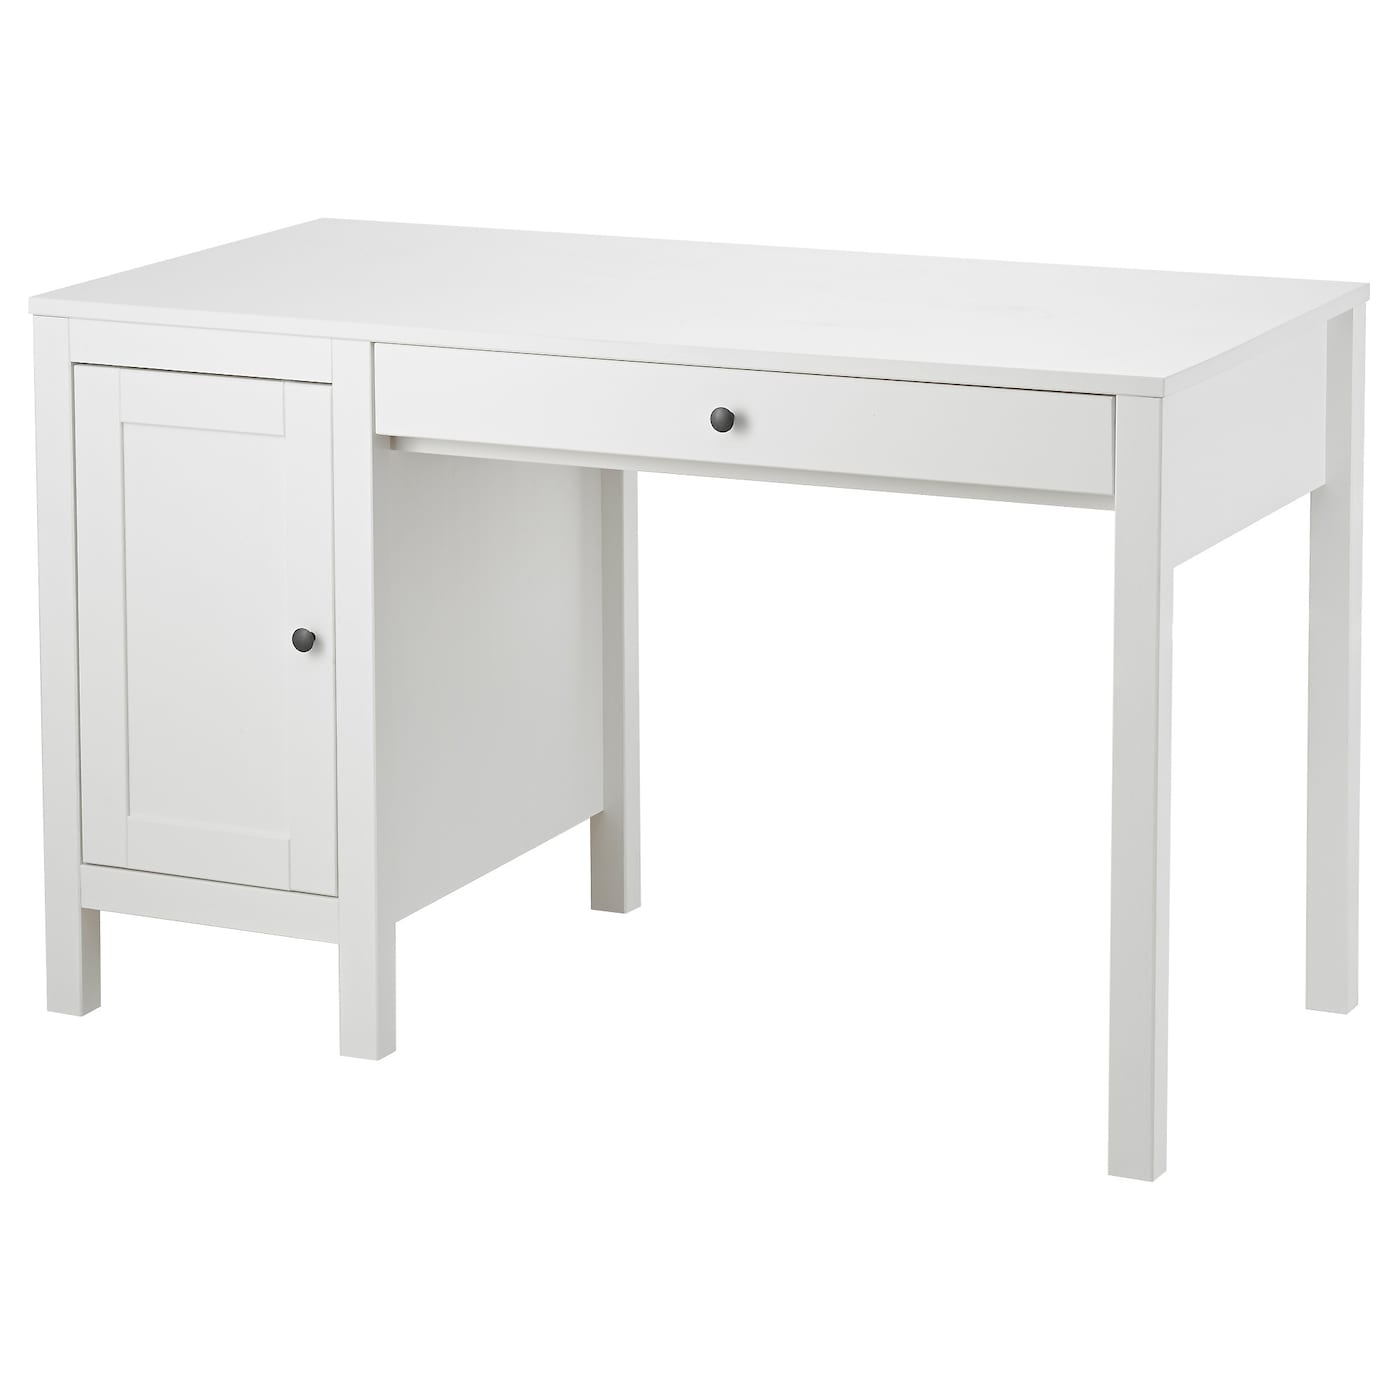 Hemnes desk white stained 120x55 cm ikea for Ikea drawing desk